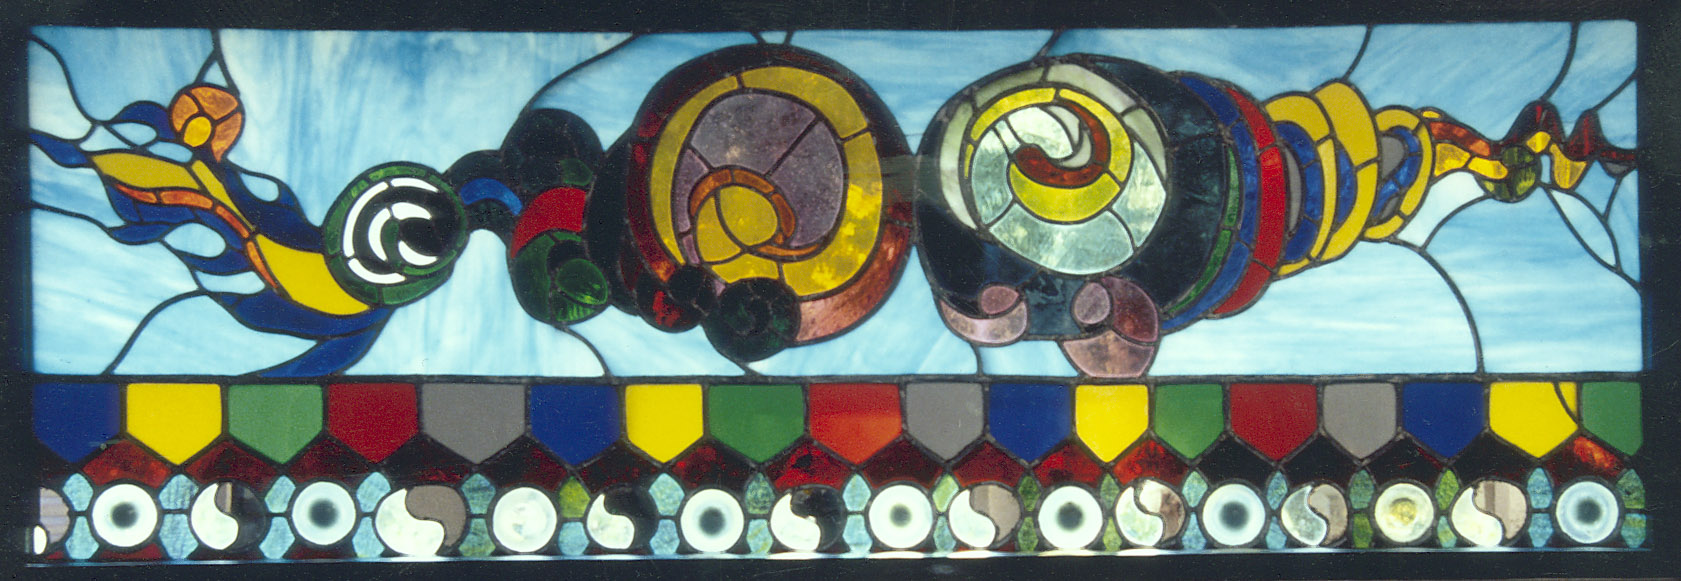 Nepal (1976)   Leaded Glass, Private Collection